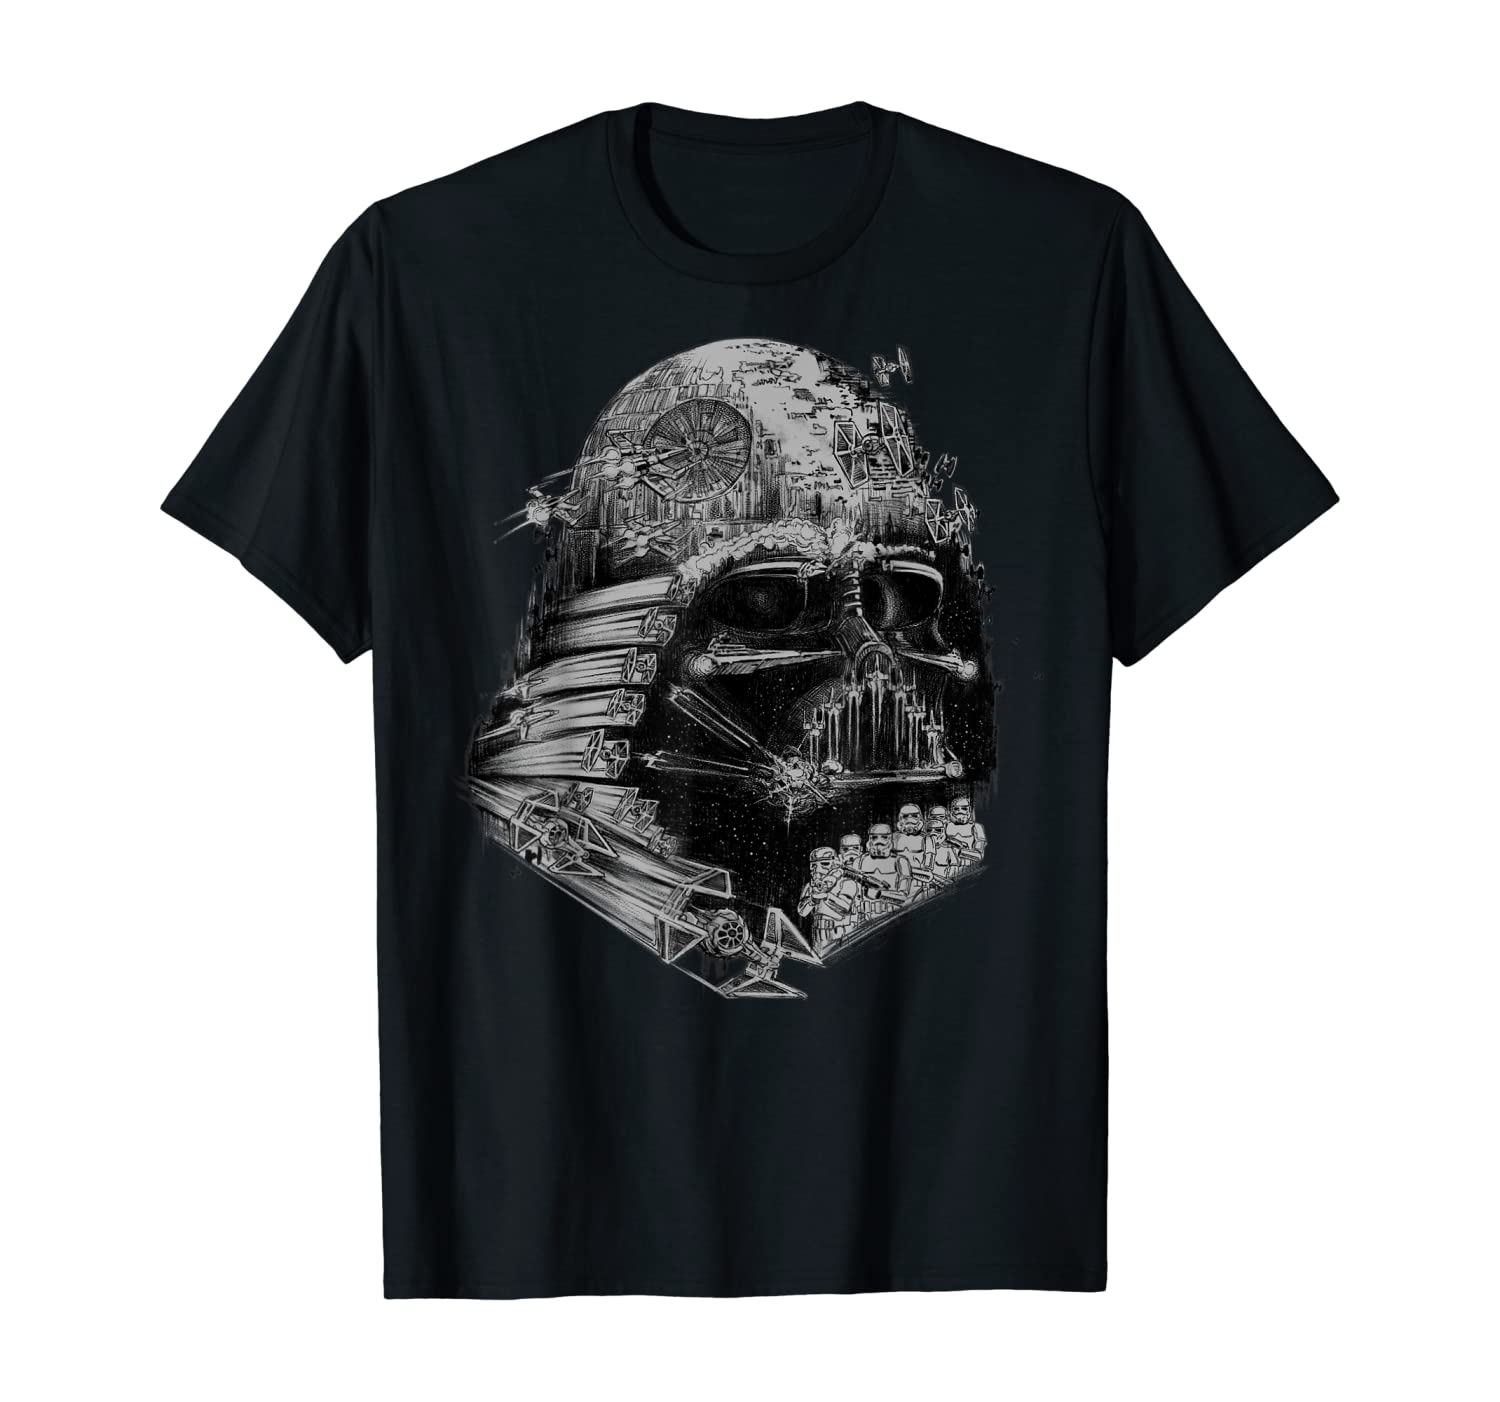 Star Wars Darth Vader Build The Empire Graphic T-Shirt T-Shirt